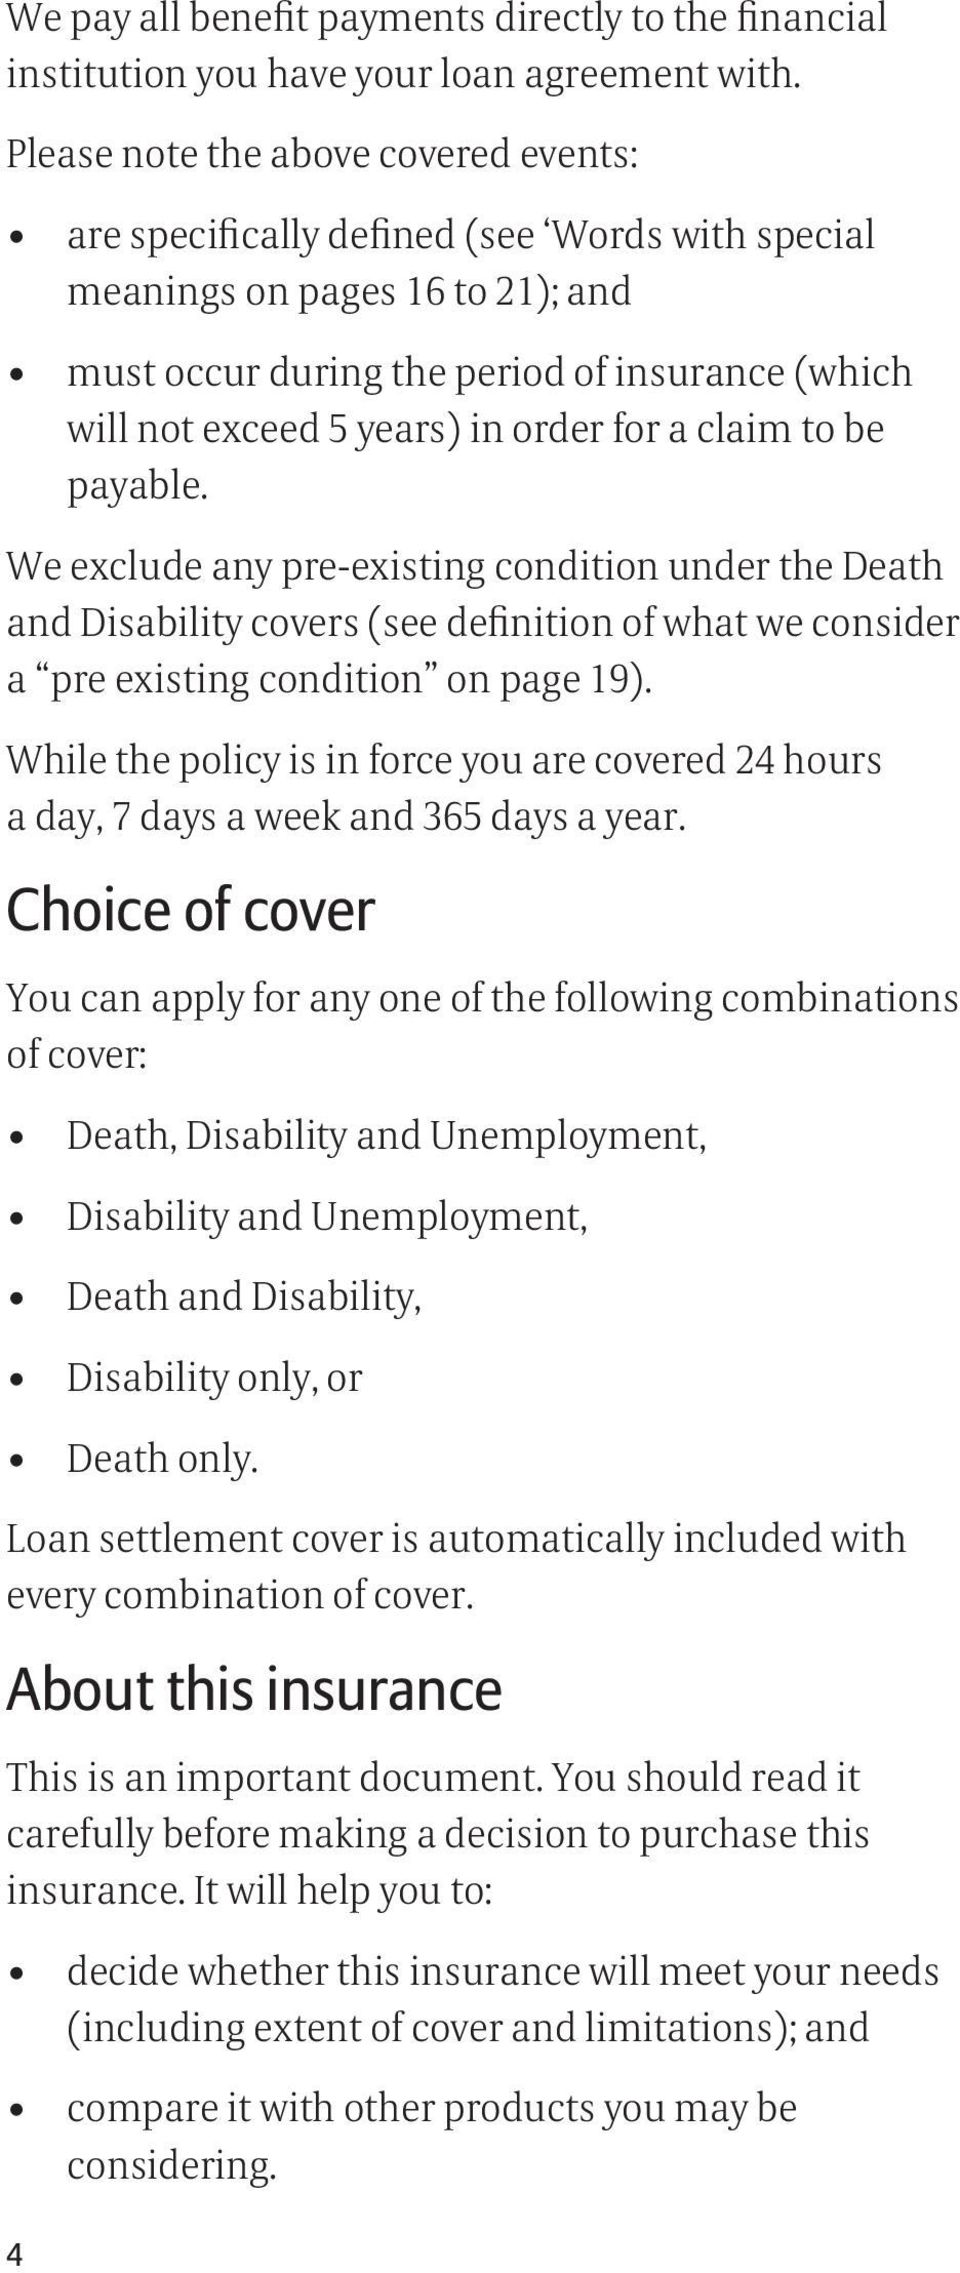 order for a claim to be payable. We exclude any pre-existing condition under the Death and Disability covers (see definition of what we consider a pre existing condition on page 19).